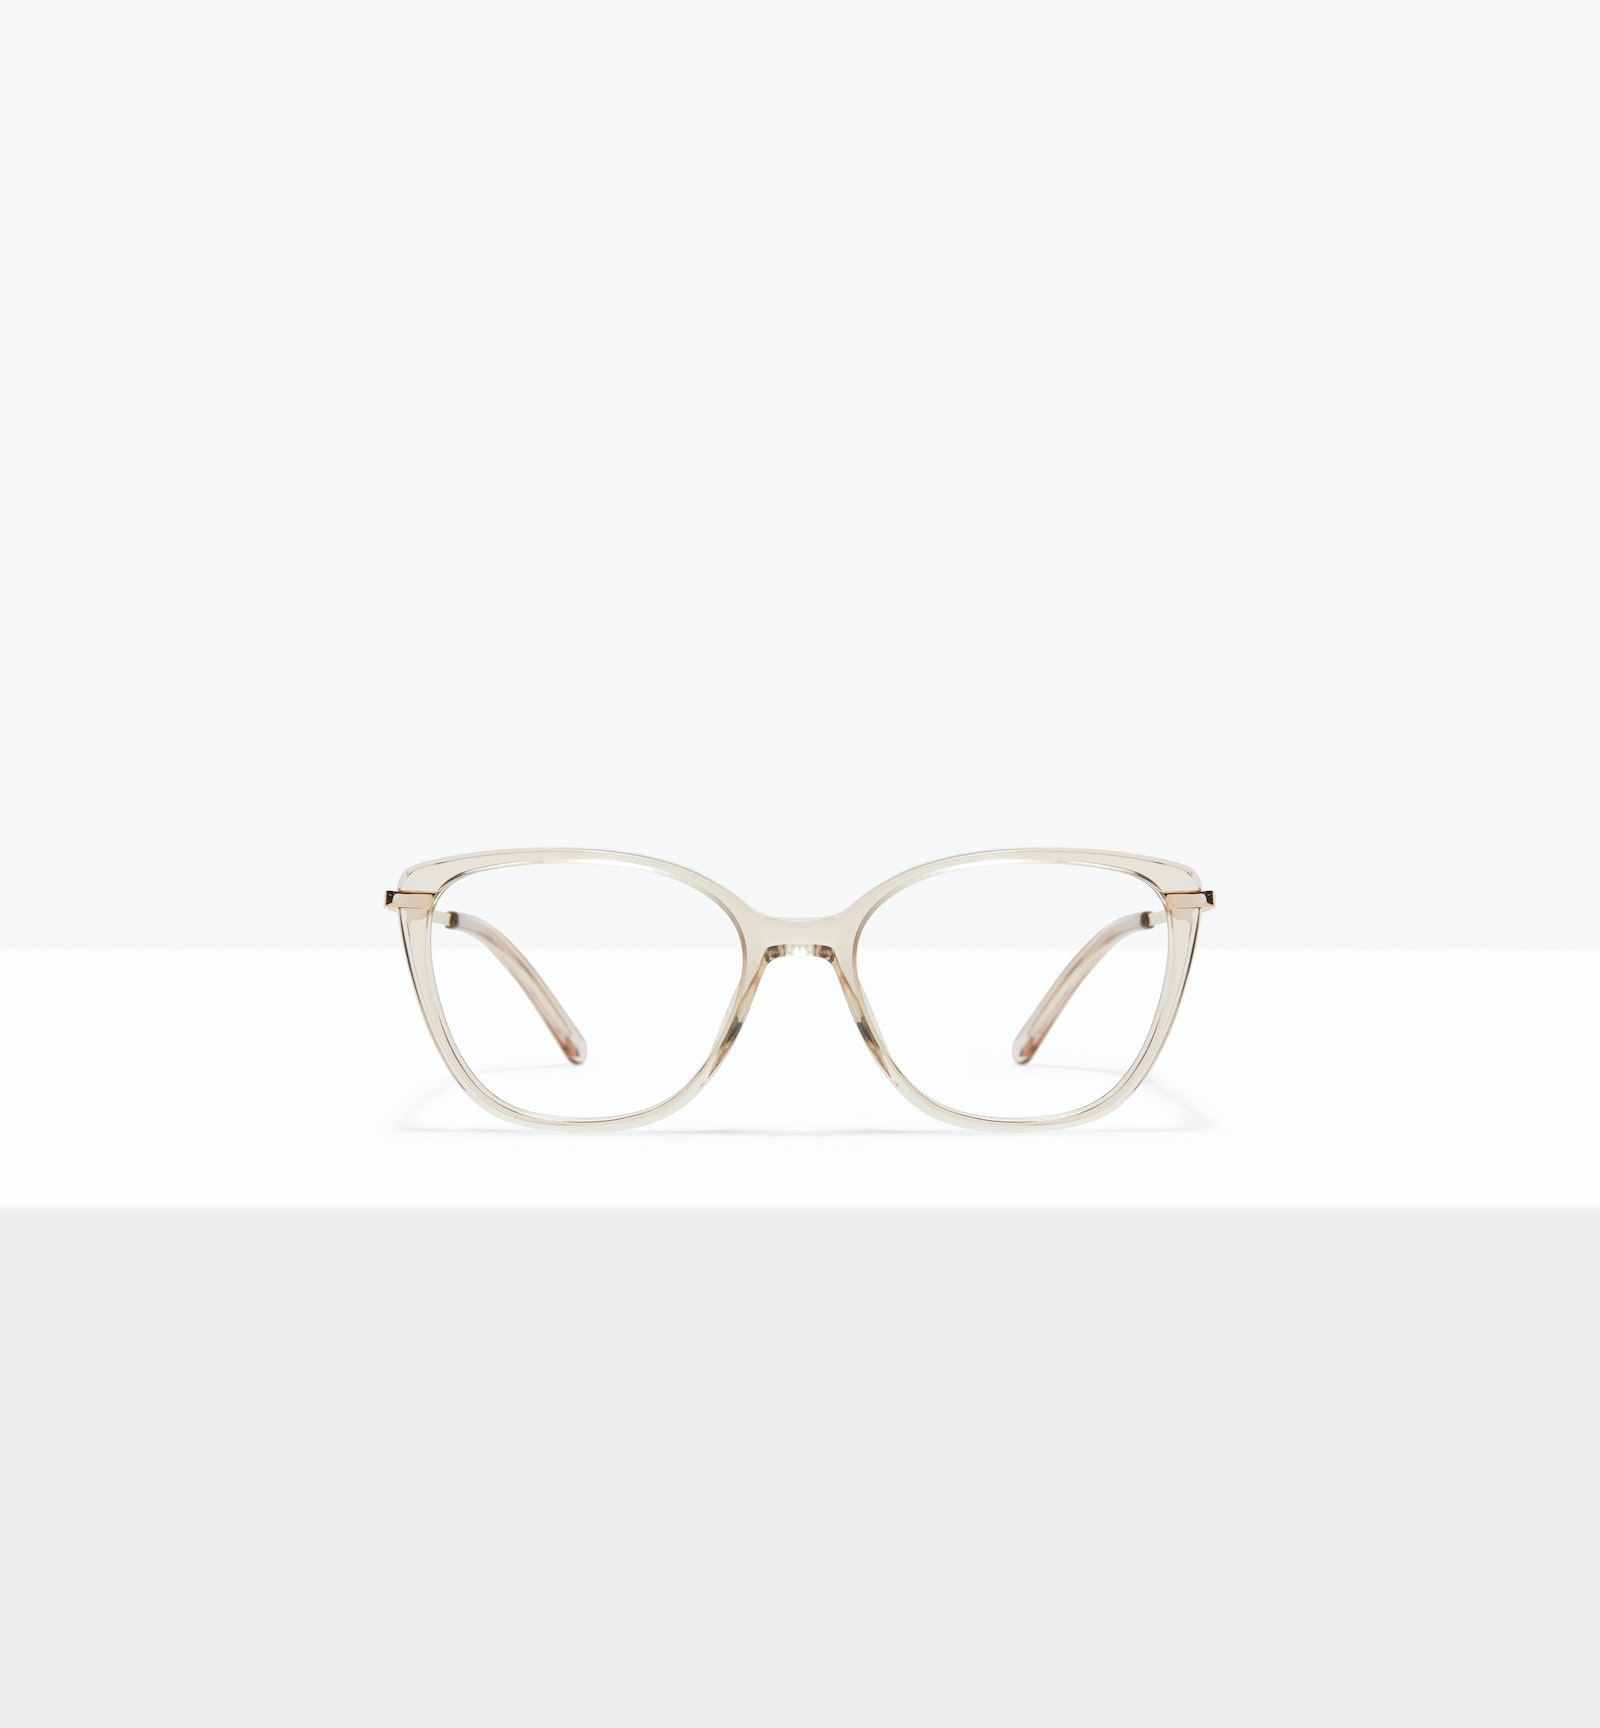 Affordable Fashion Glasses Rectangle Square Eyeglasses Women Illusion XS Blond